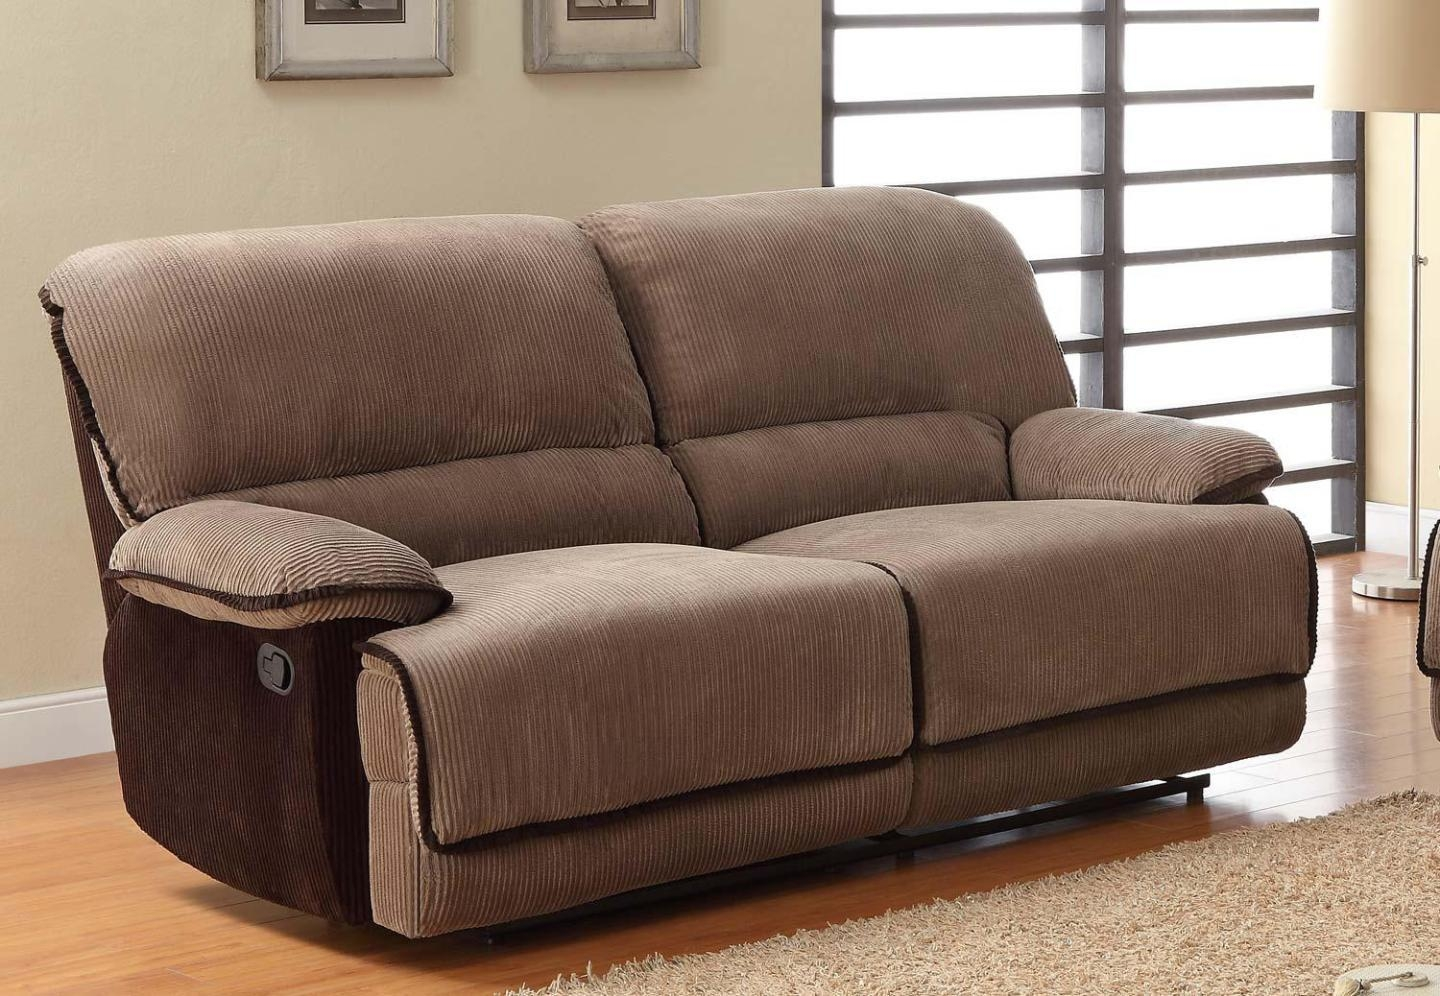 Featured Image of Slipcover For Recliner Sofas